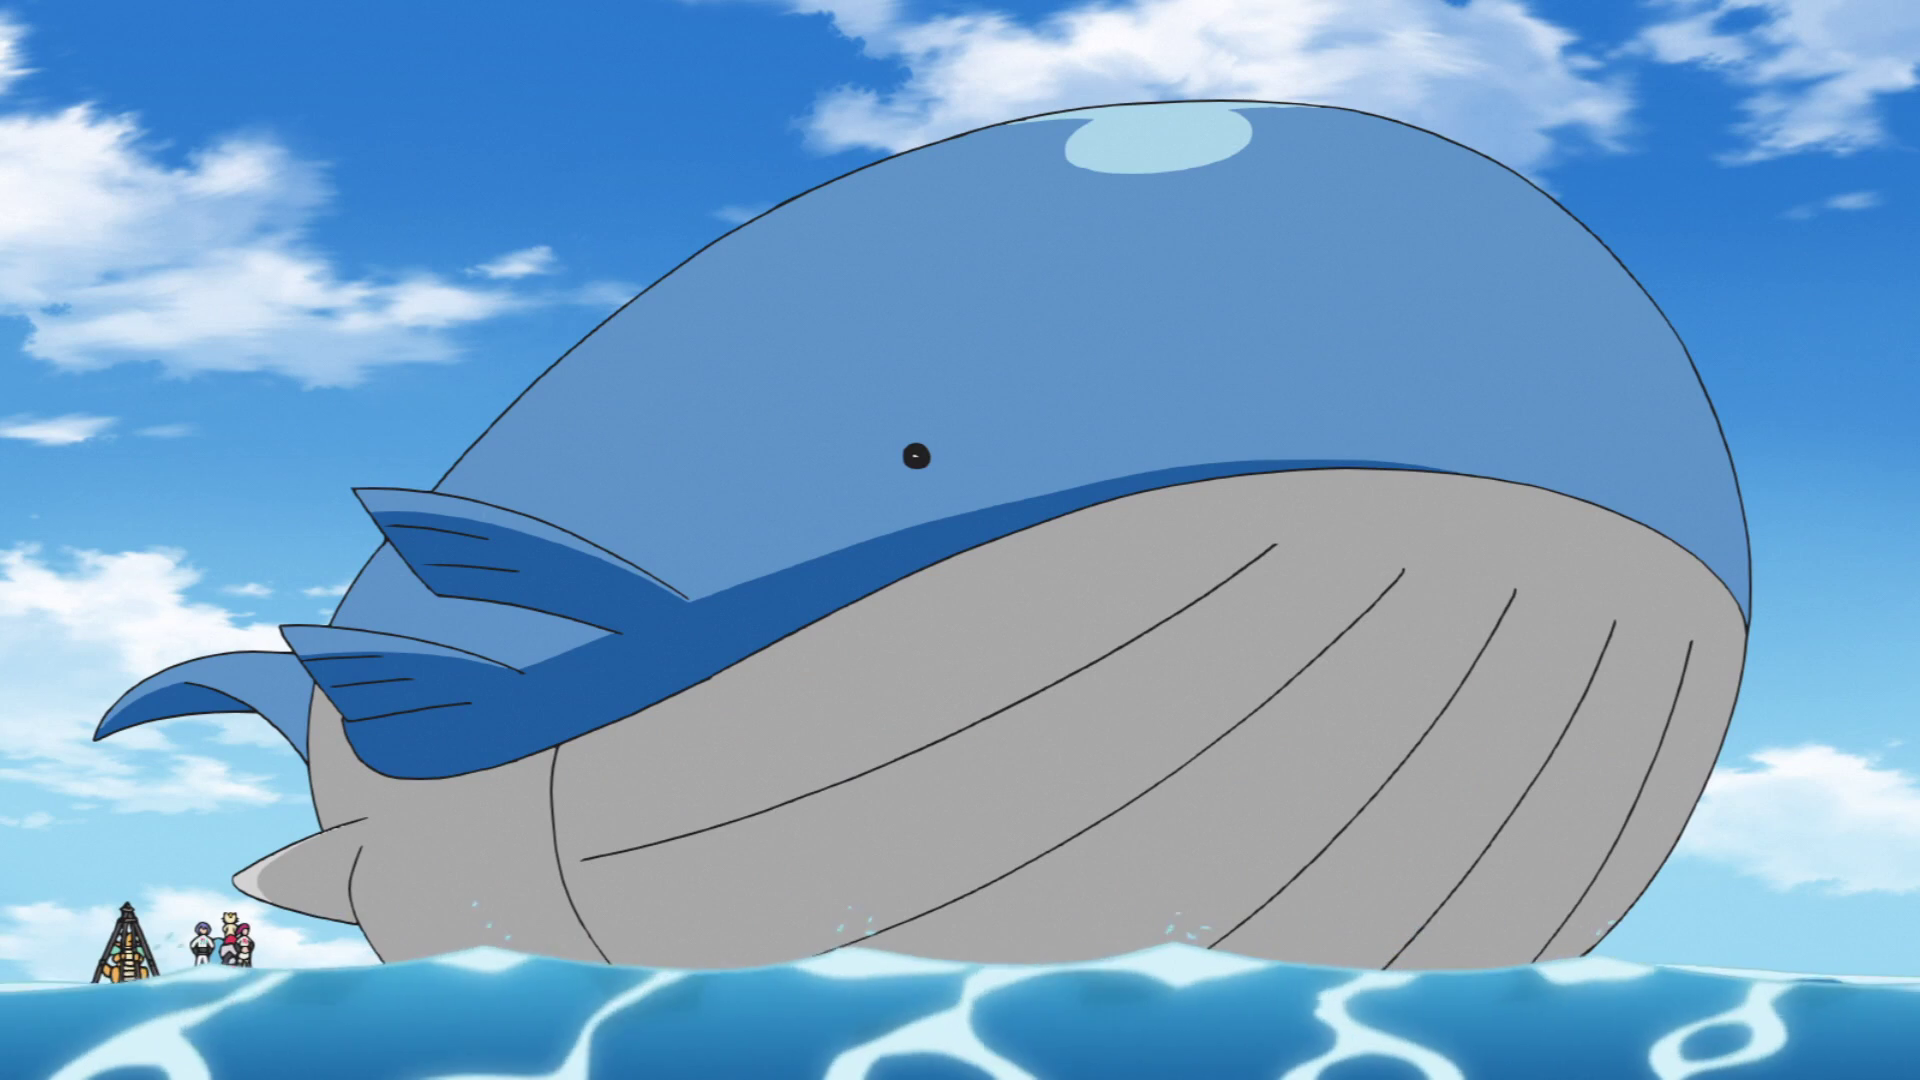 Team Rocket Wailord